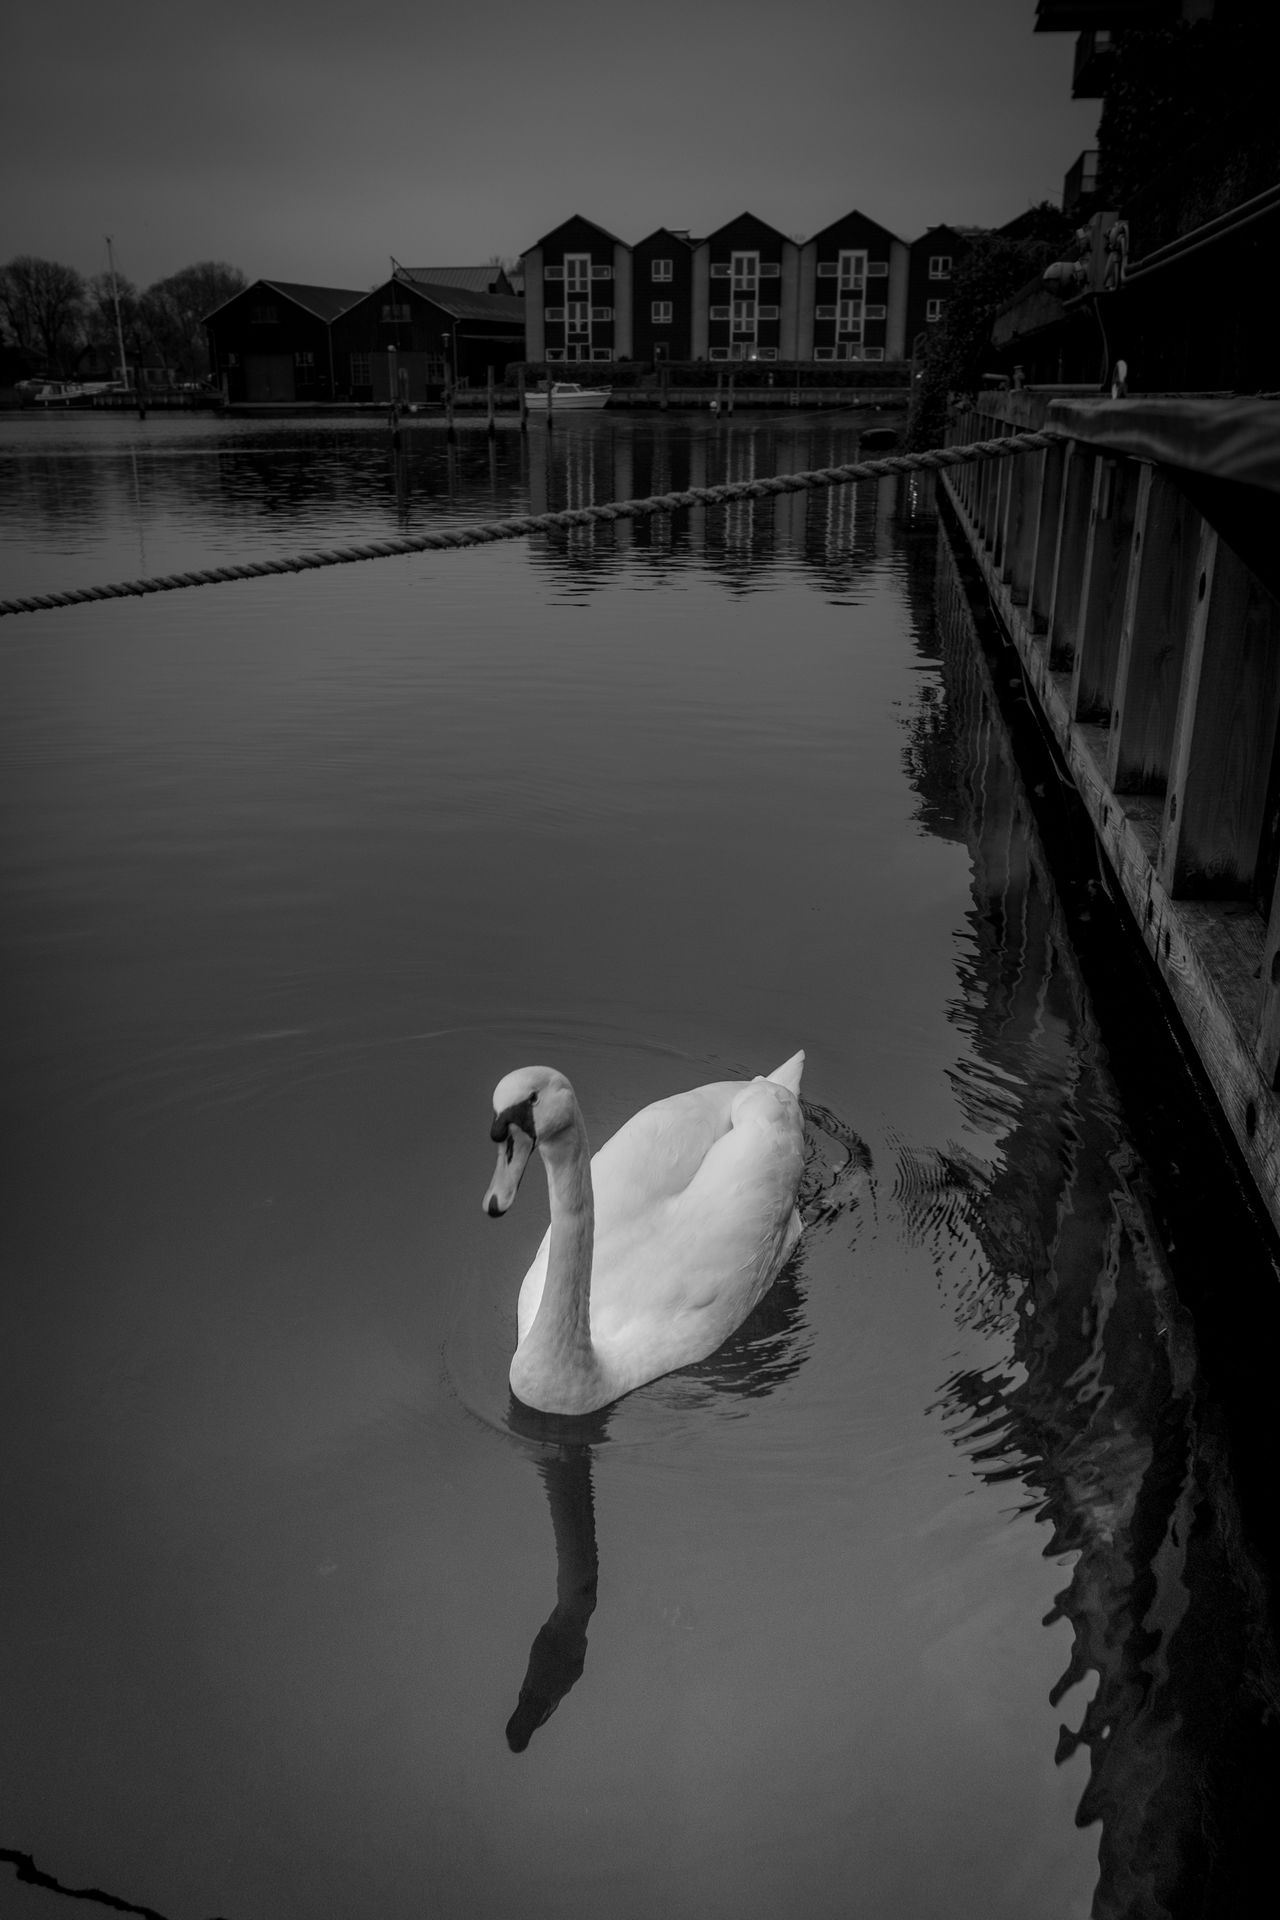 Animal Themes Animals In The Wild Architecture B&w Beautiful Bird Black And White Cold Temperature Copenhagen Copenhagen, Denmark Copy Space Day Focus On Foreground Grey Day Nature No People One Animal Outdoors Reflection Swan Swans Swimming Water Water Bird